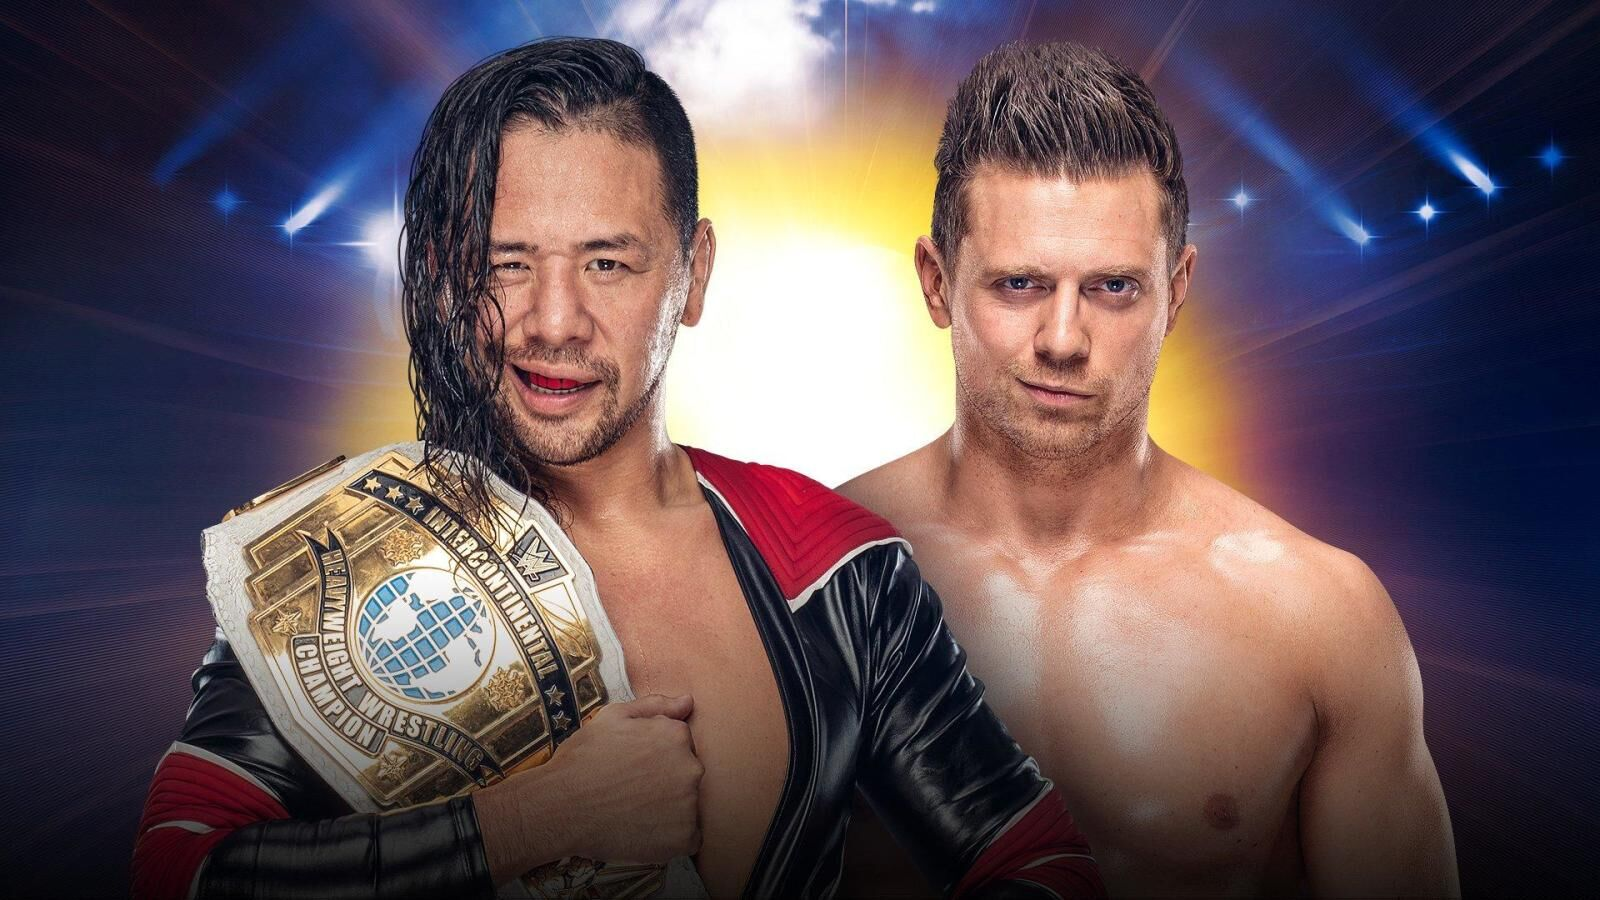 WWE Clash of Champions 2019: Intercontinental Championship match preview